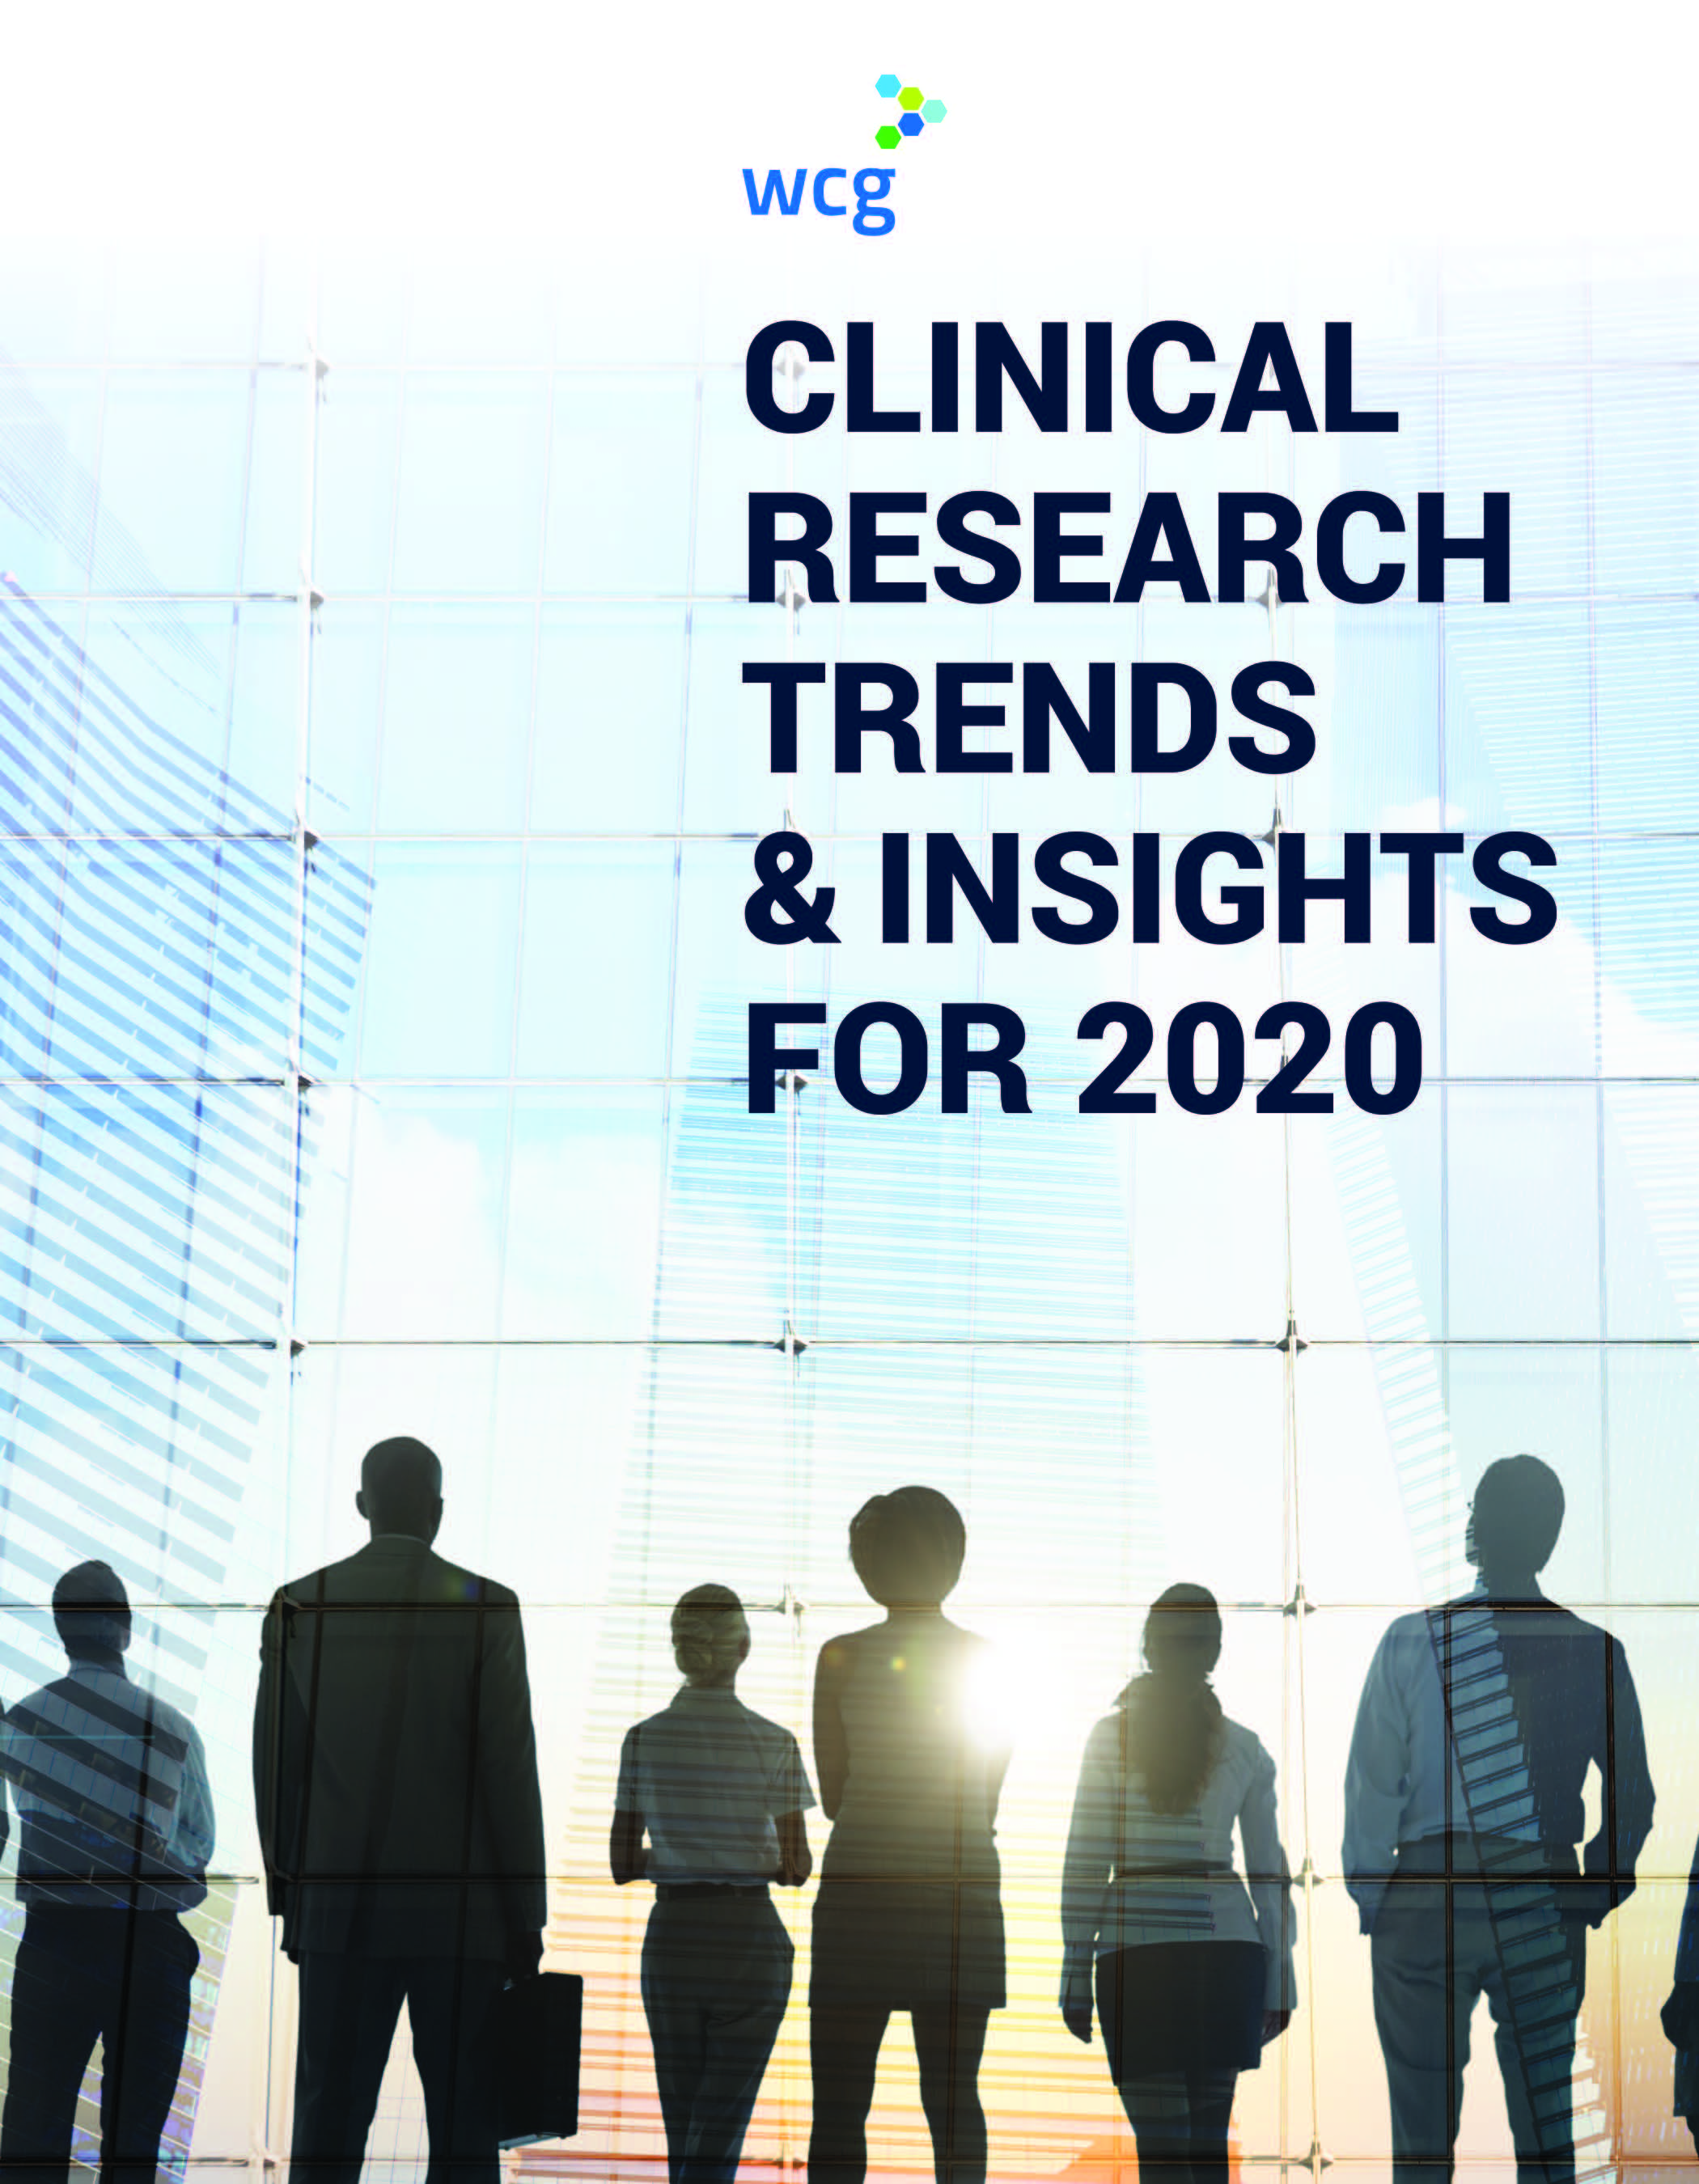 Clinical Research Trends & Insights for 2020